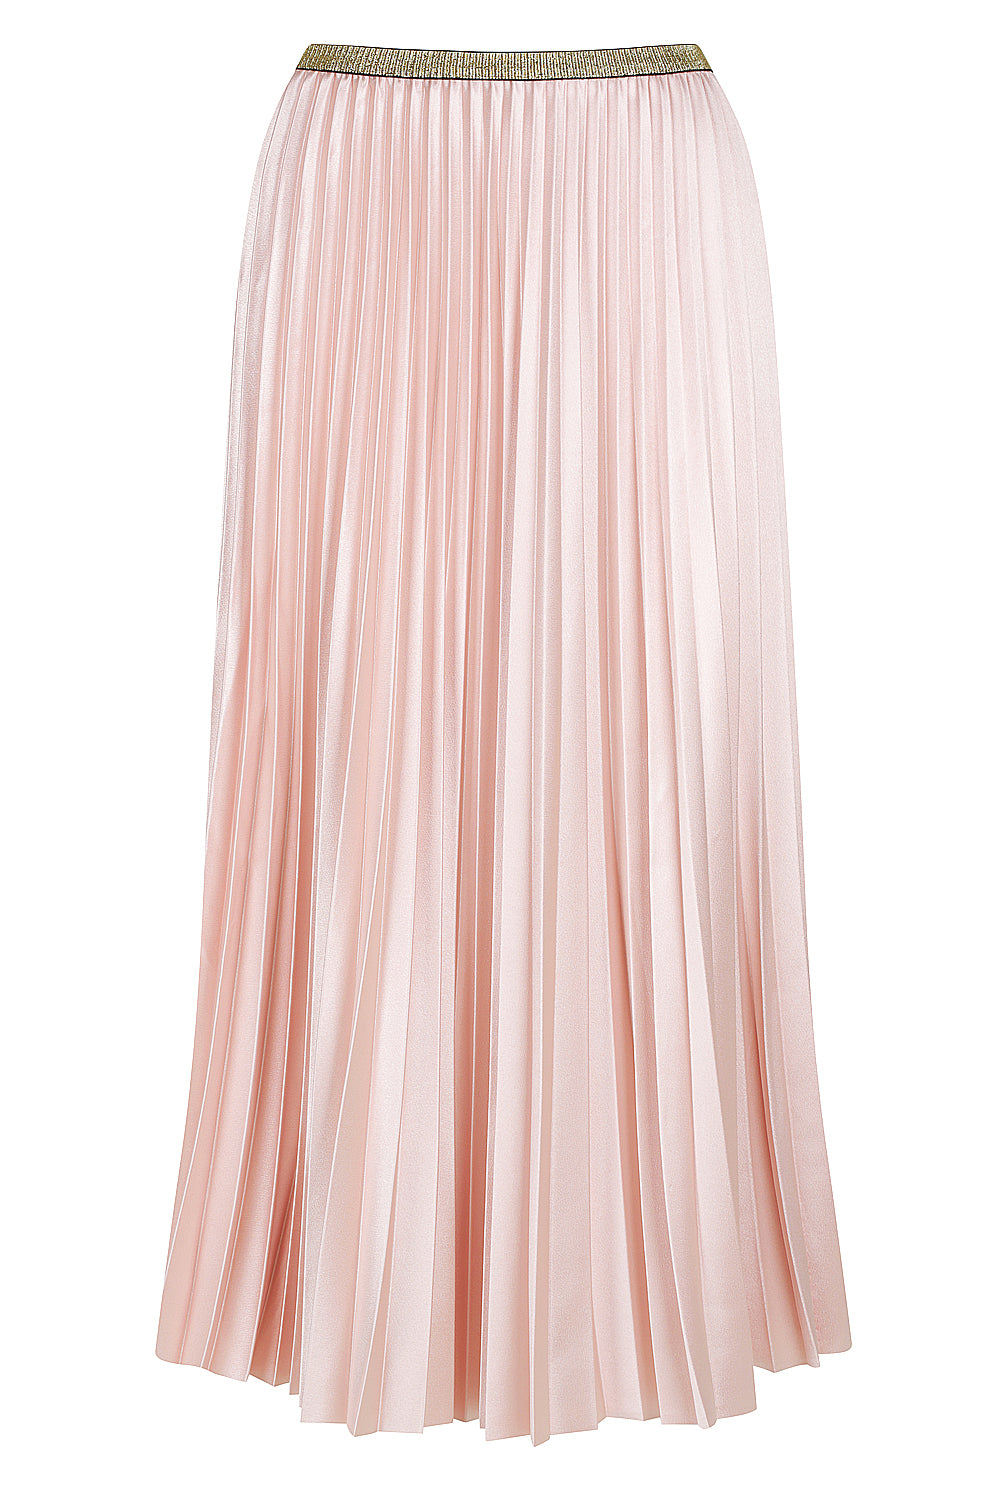 Pleated Satin Skirt - champagne pink